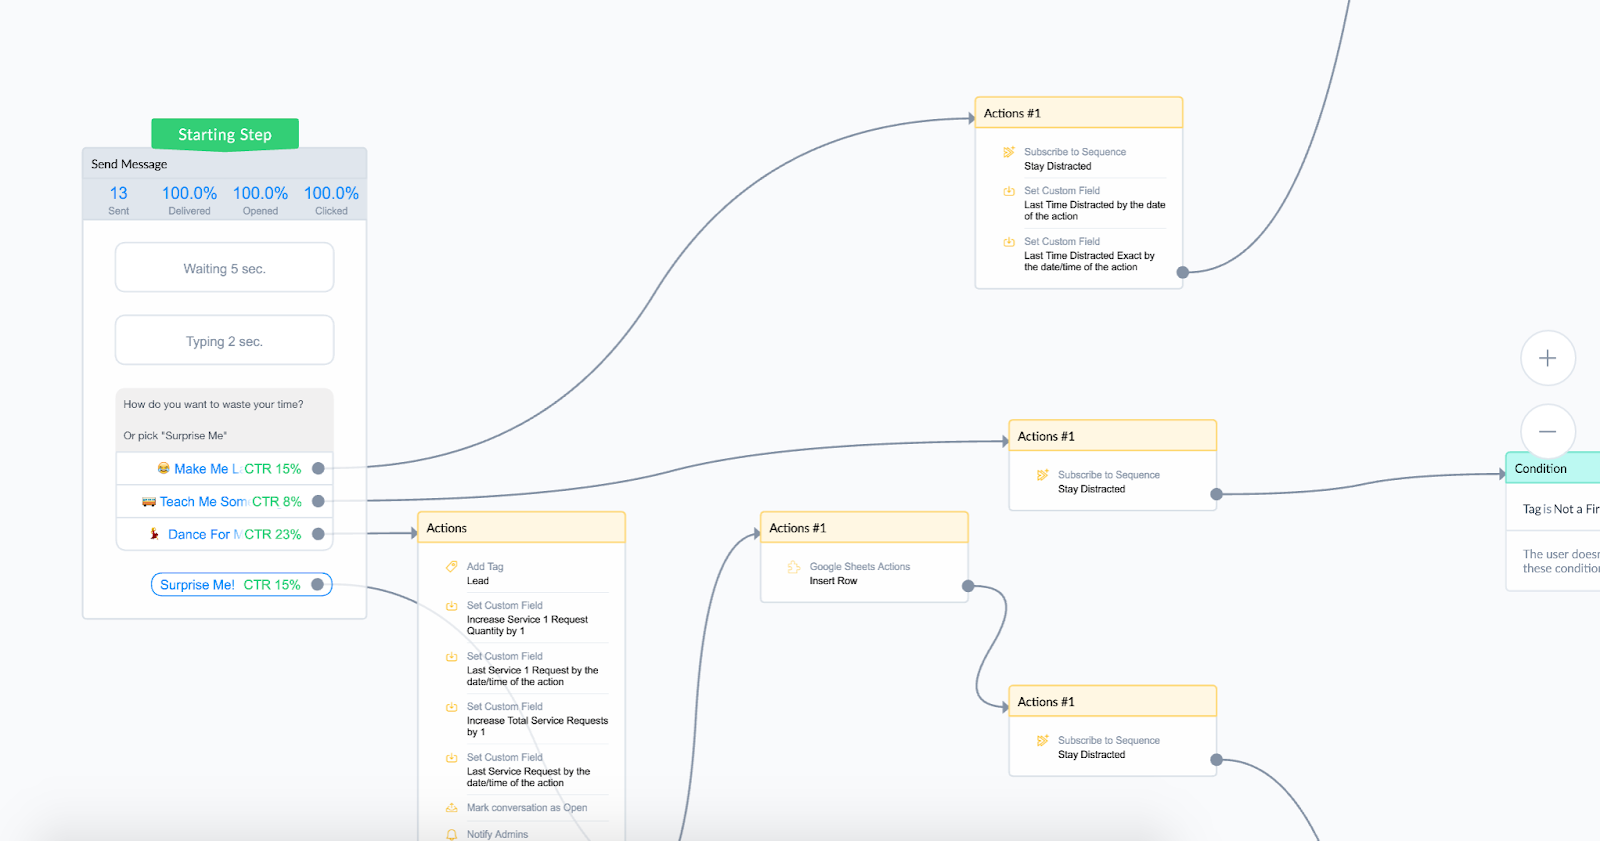 Advanced Targeting Example flow in ManyChat